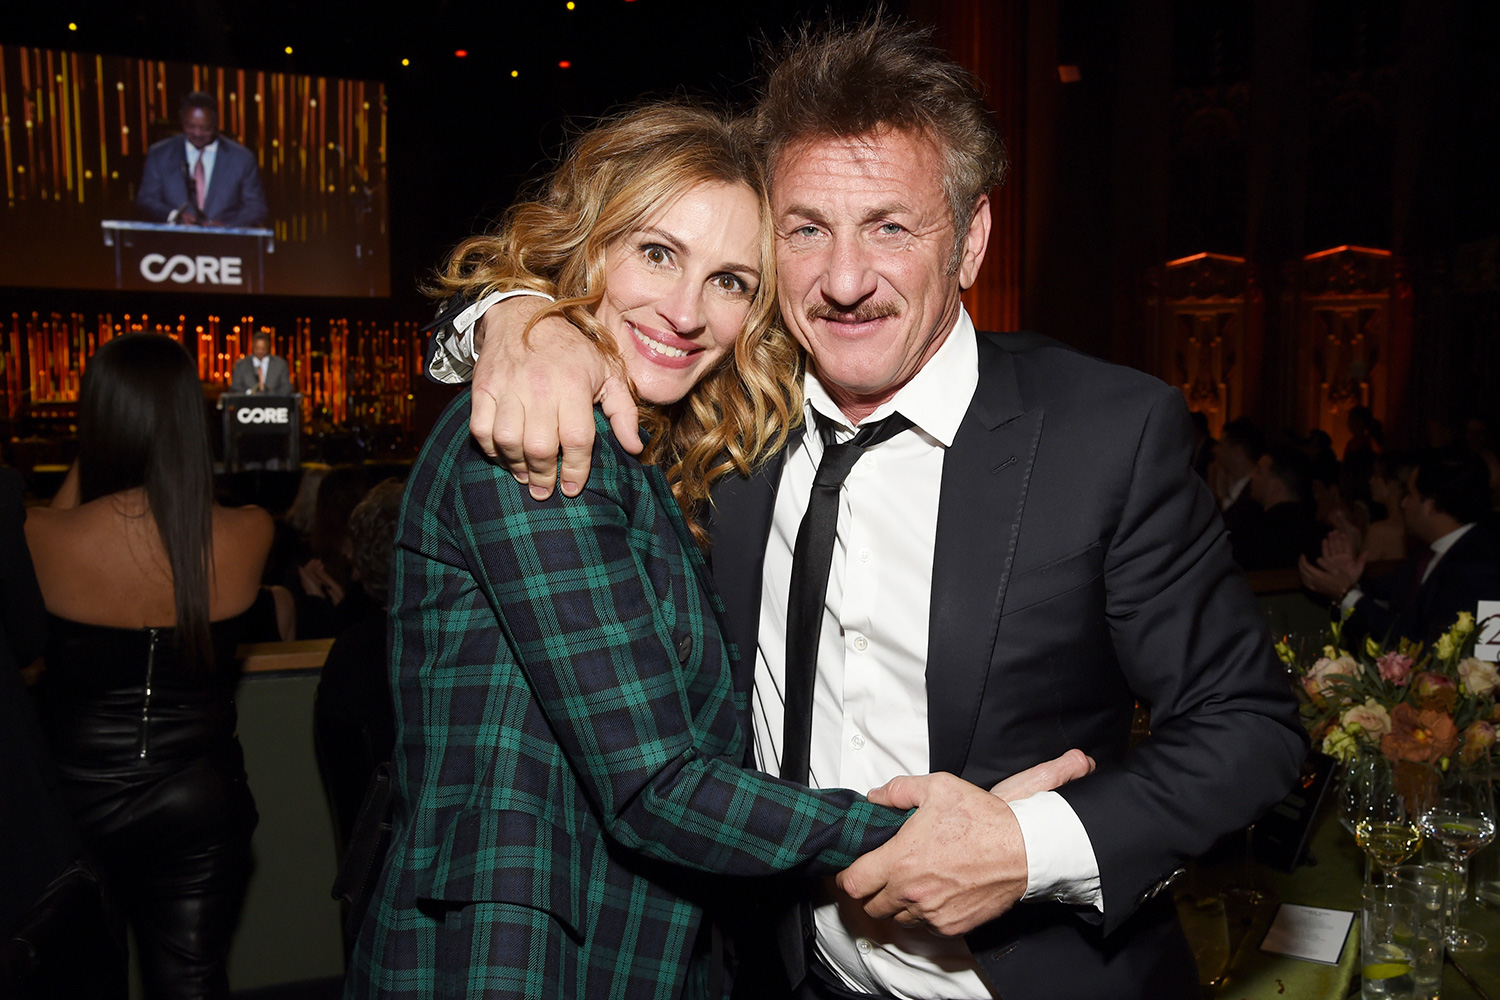 Julia Roberts and Sean Penn attend CORE Gala: A Gala Dinner to Benefit CORE and 10 Years of Life-Saving Work Across Haiti & Around the World at Wiltern Theatre on January 15, 2020 in Los Angeles